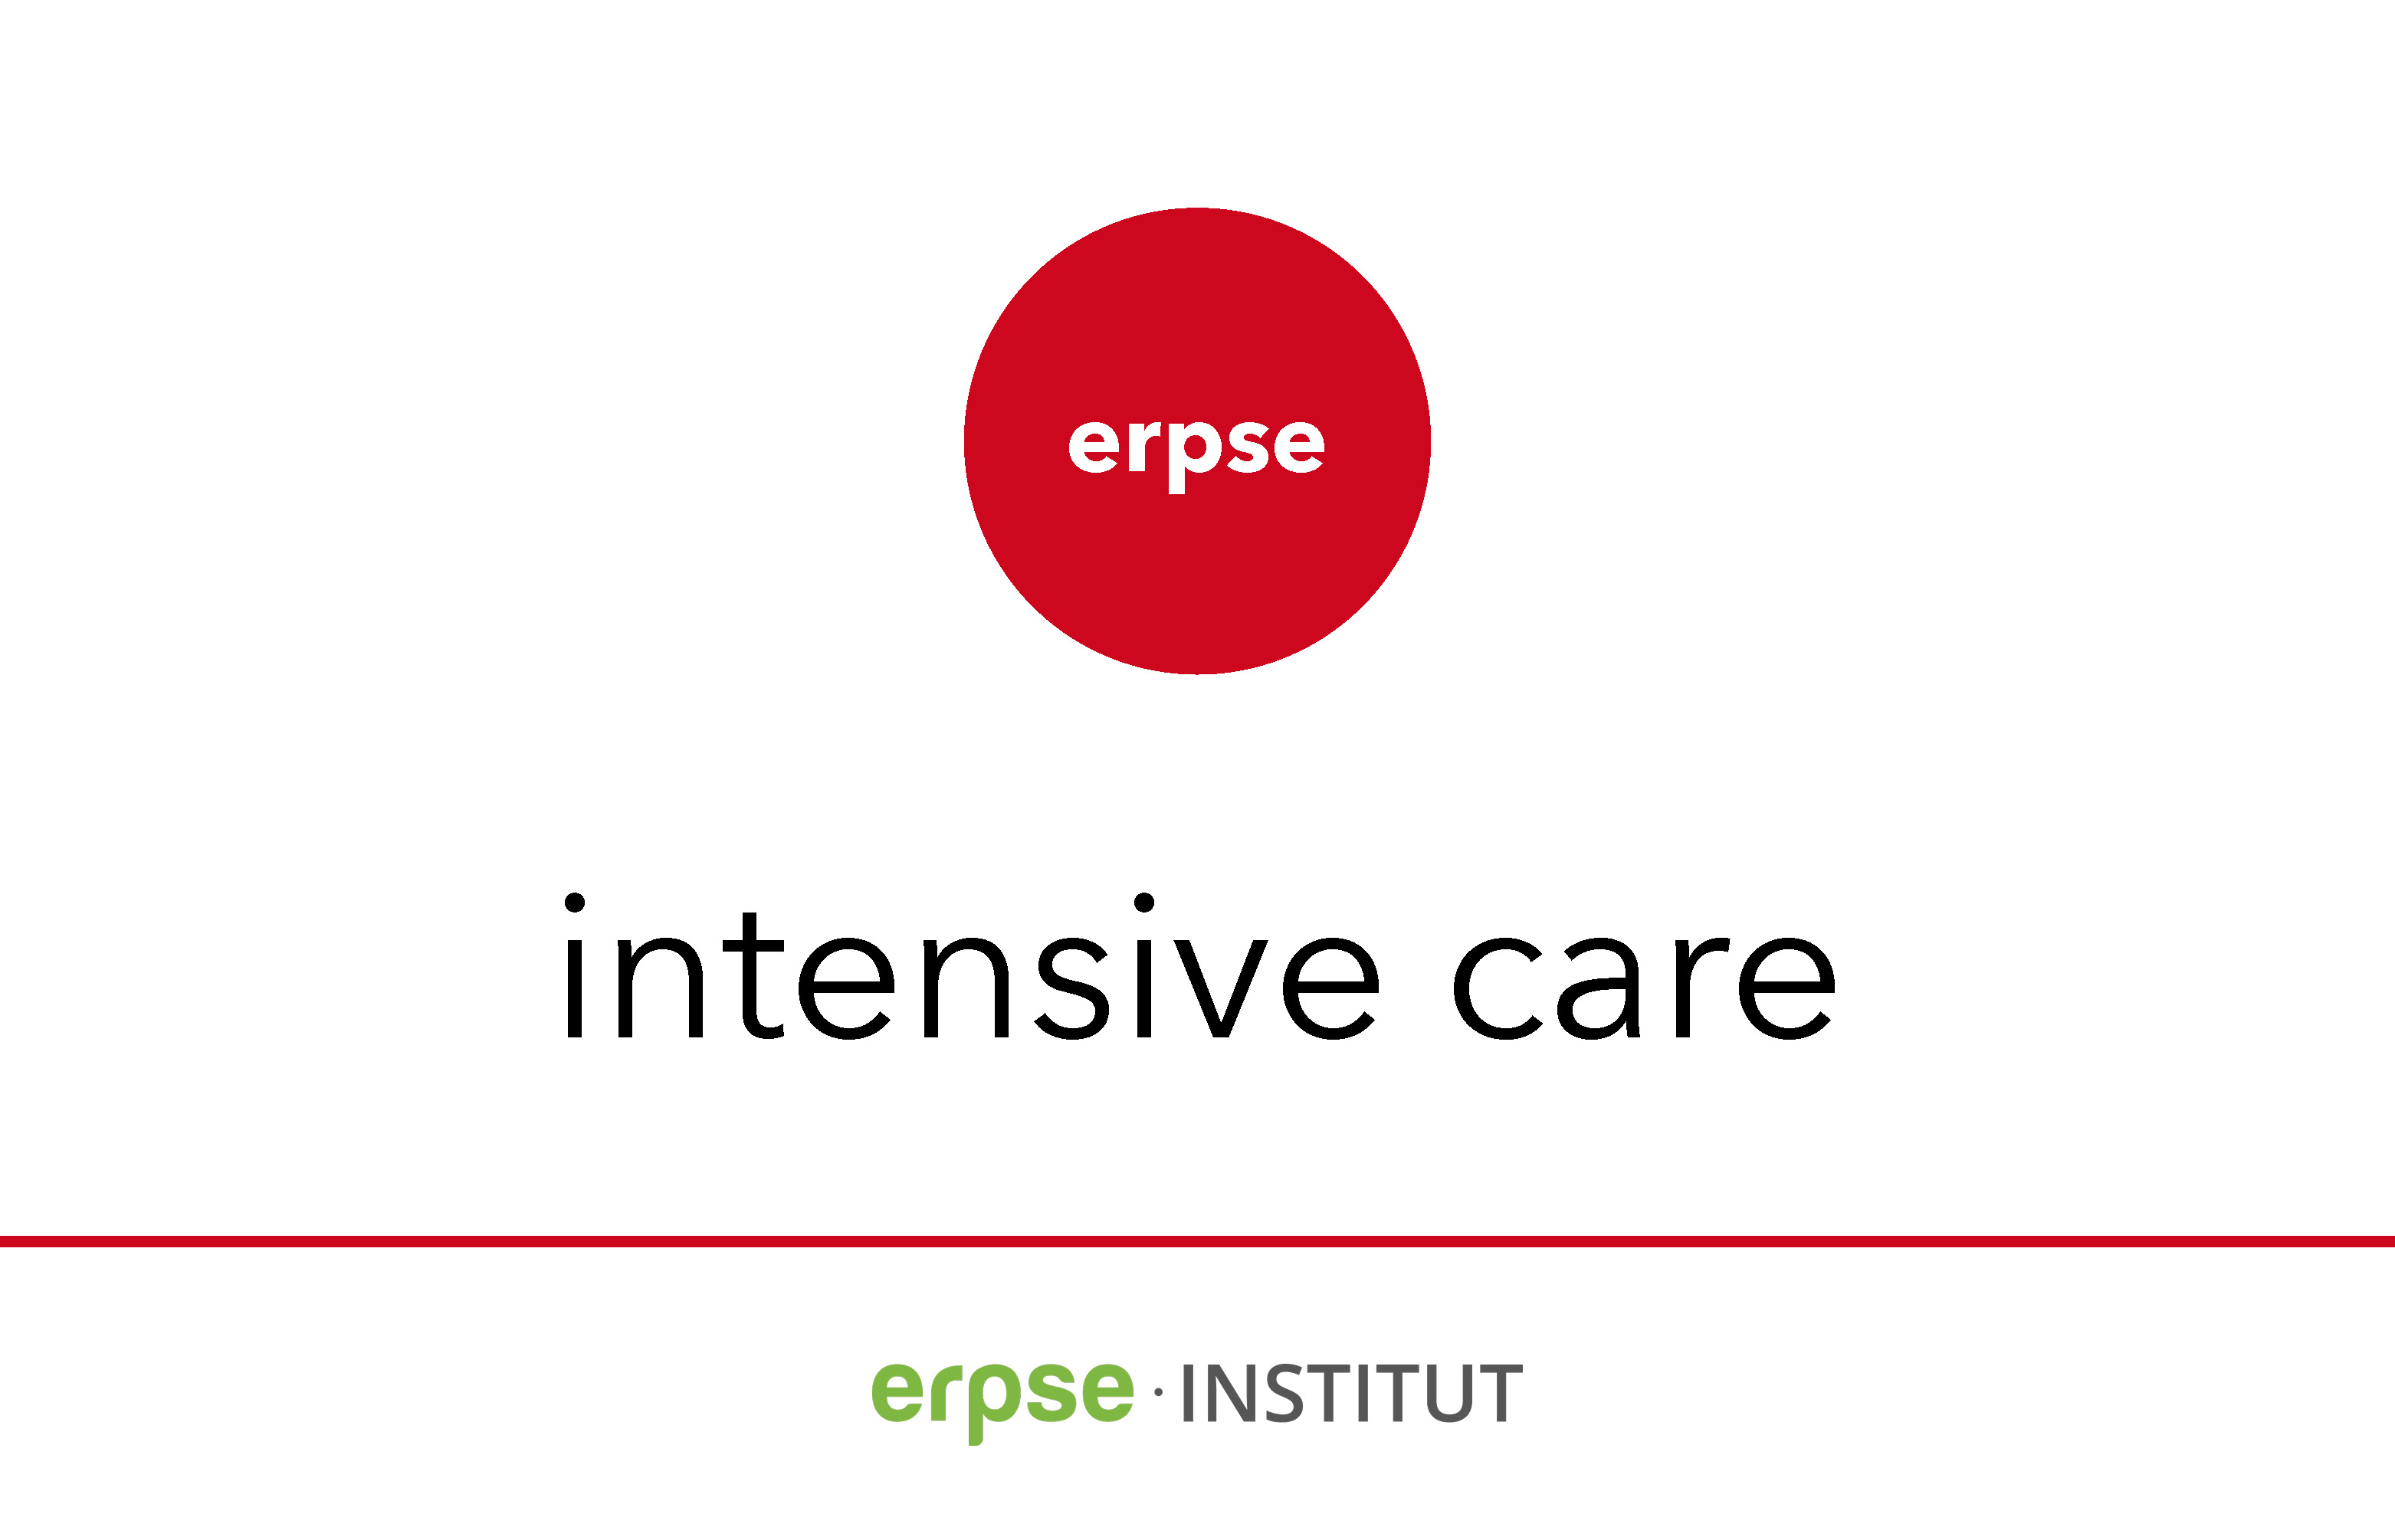 erpse intensive care